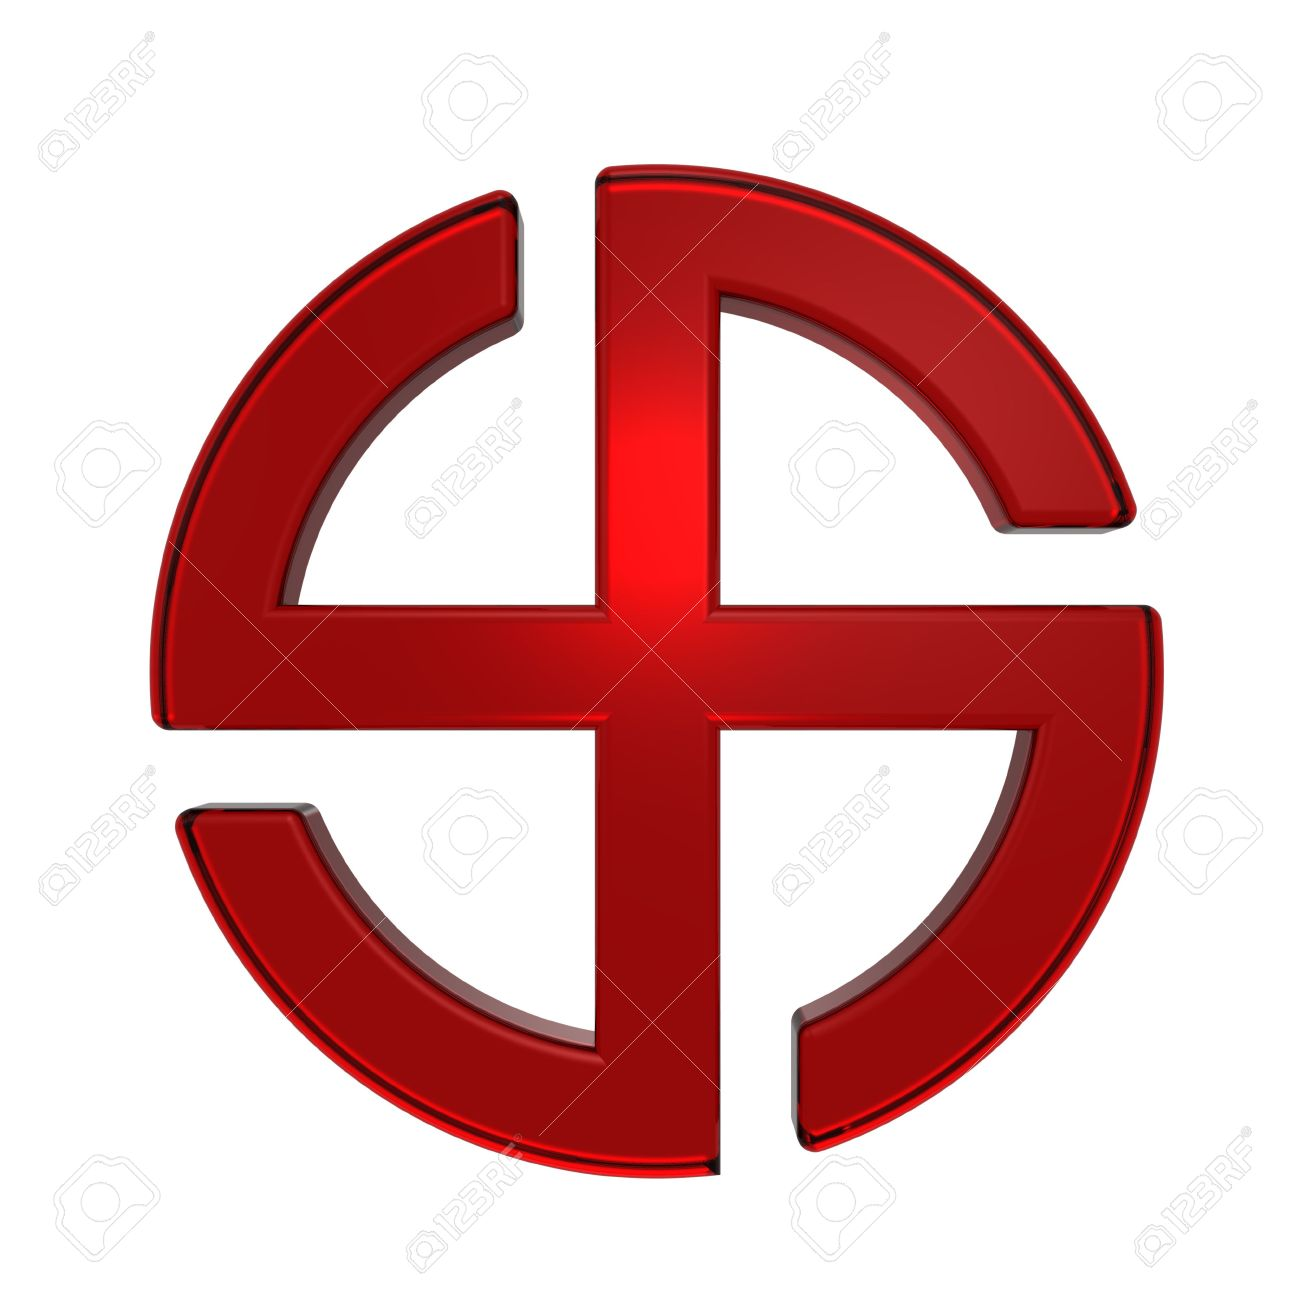 Ultimate fringe theory ancients reasoned out that the earth is a ancient hindu swastika and others this symbol even suggests rotation biocorpaavc Choice Image